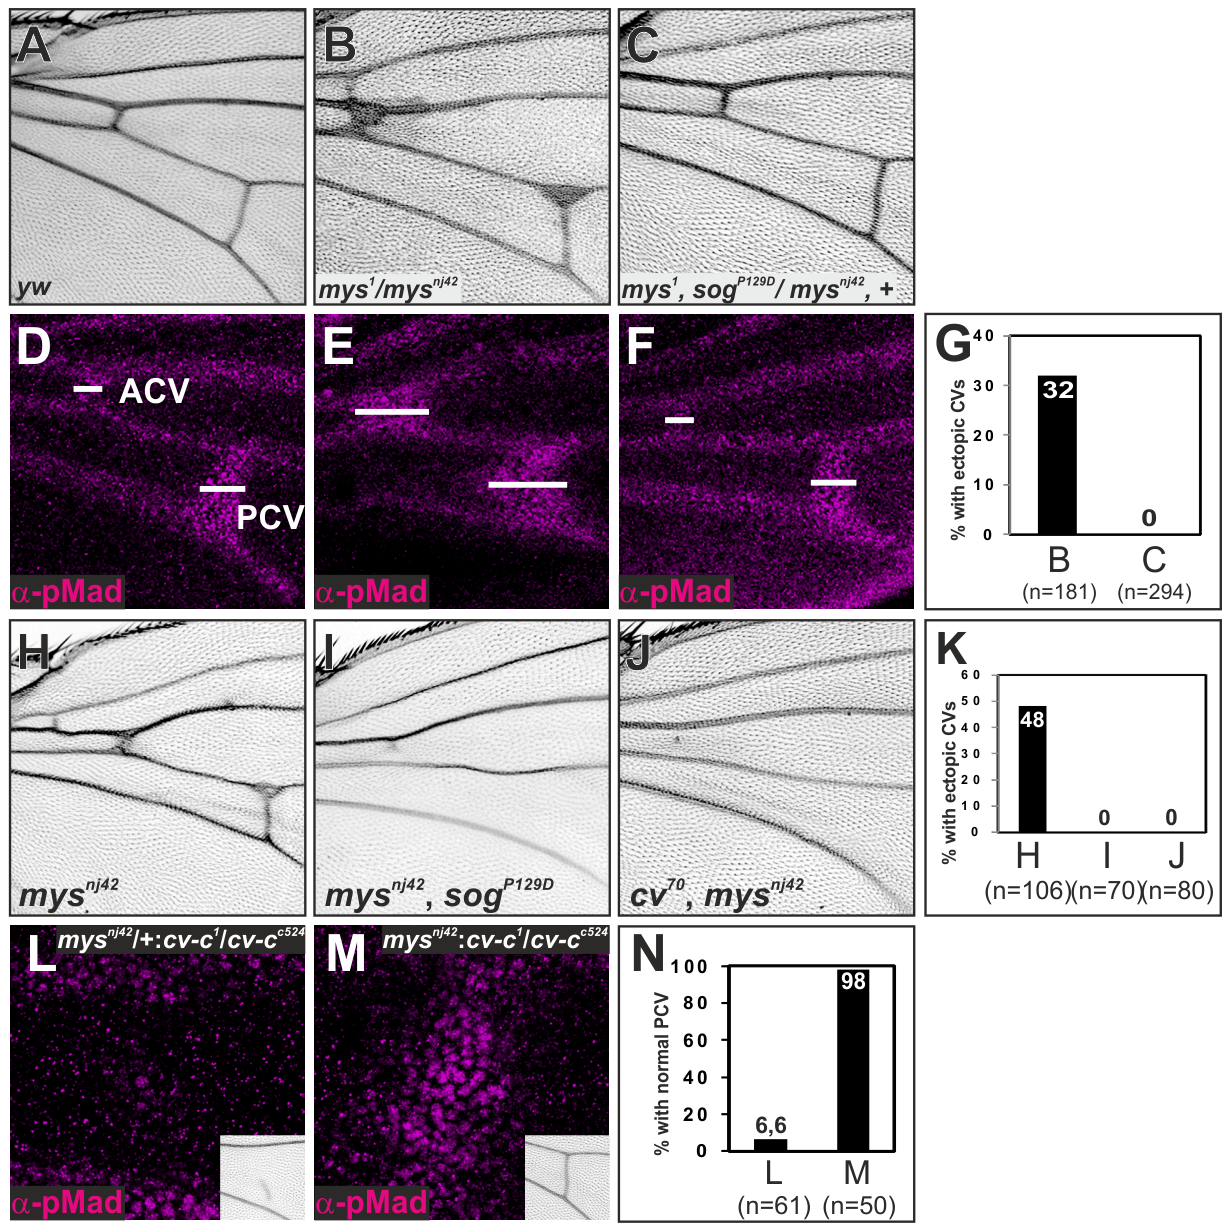 ß-integrin links Sog-Cv-dependent BMP signaling and PCV morphogenesis.